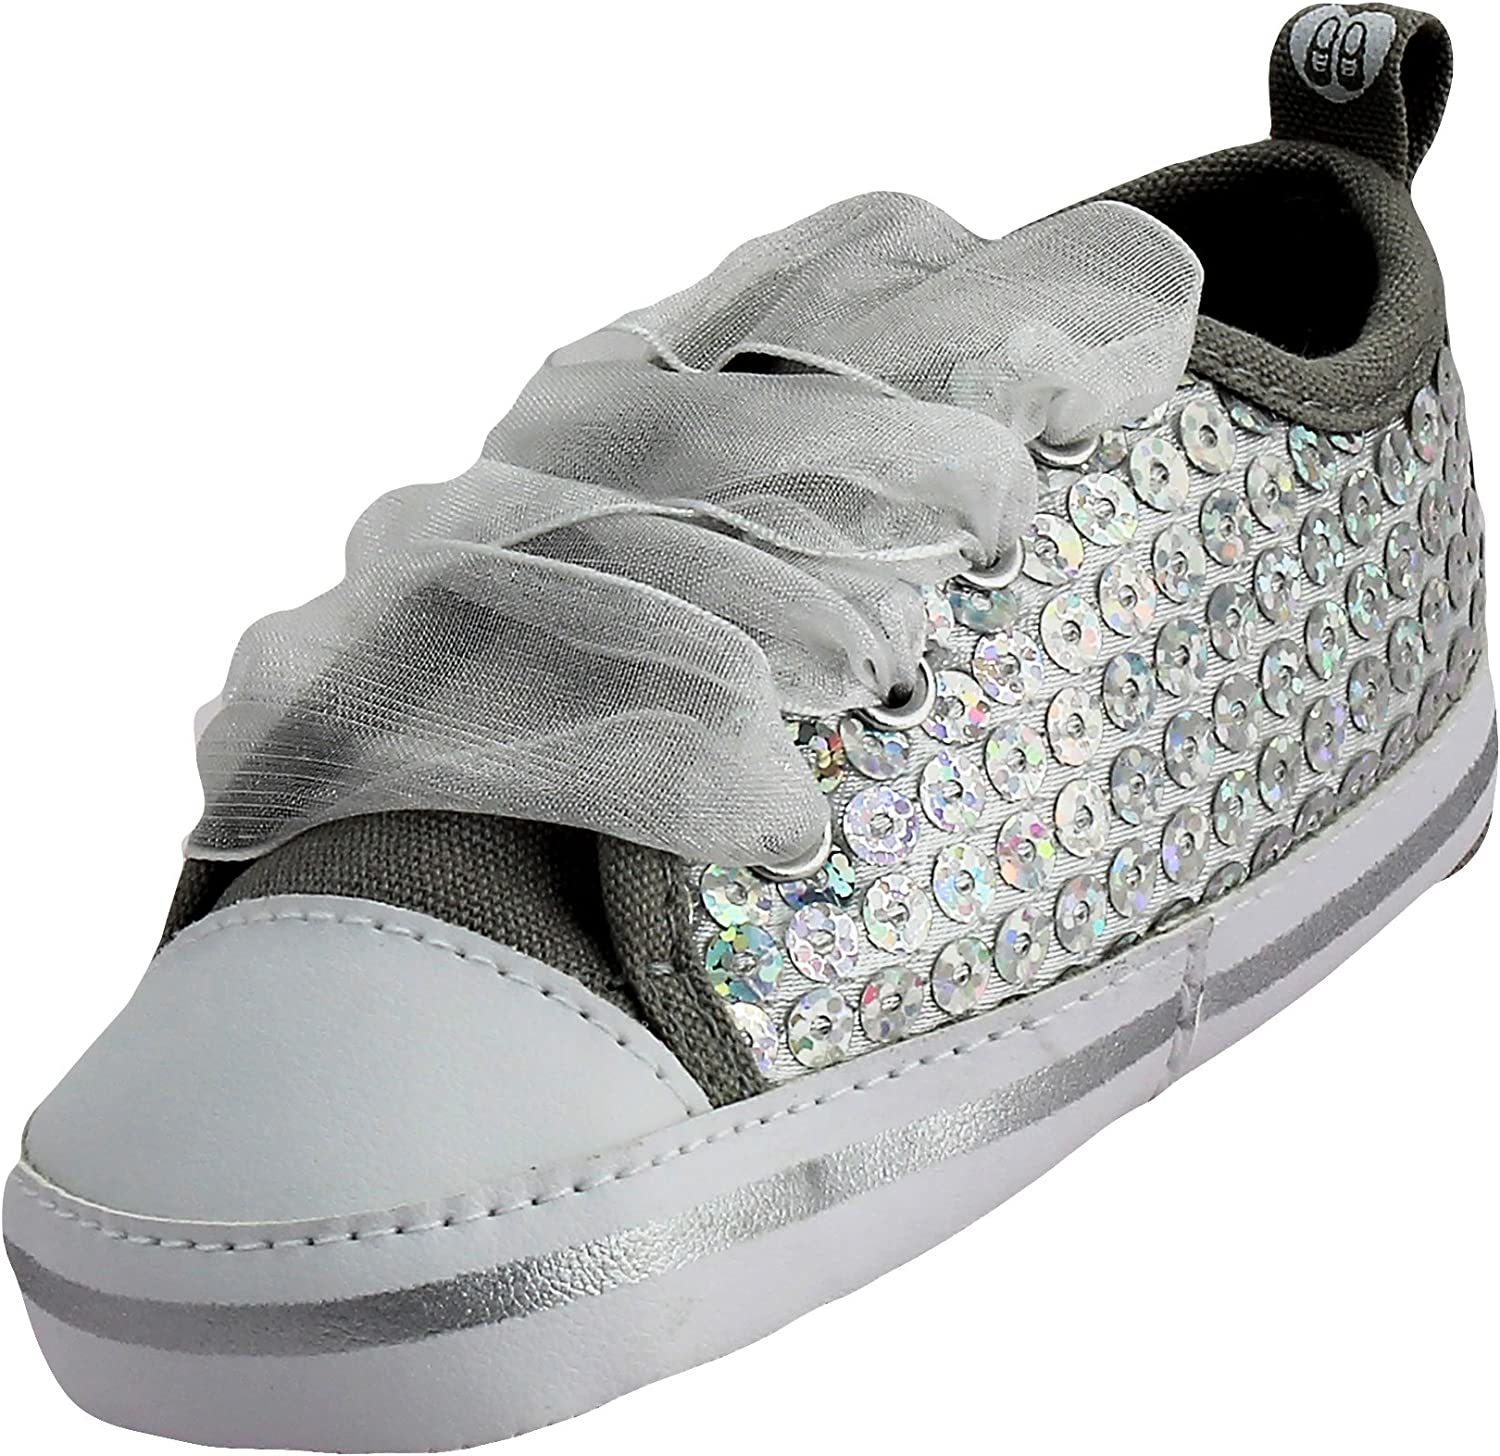 Stepping Stones Girls Sequin Sneakers